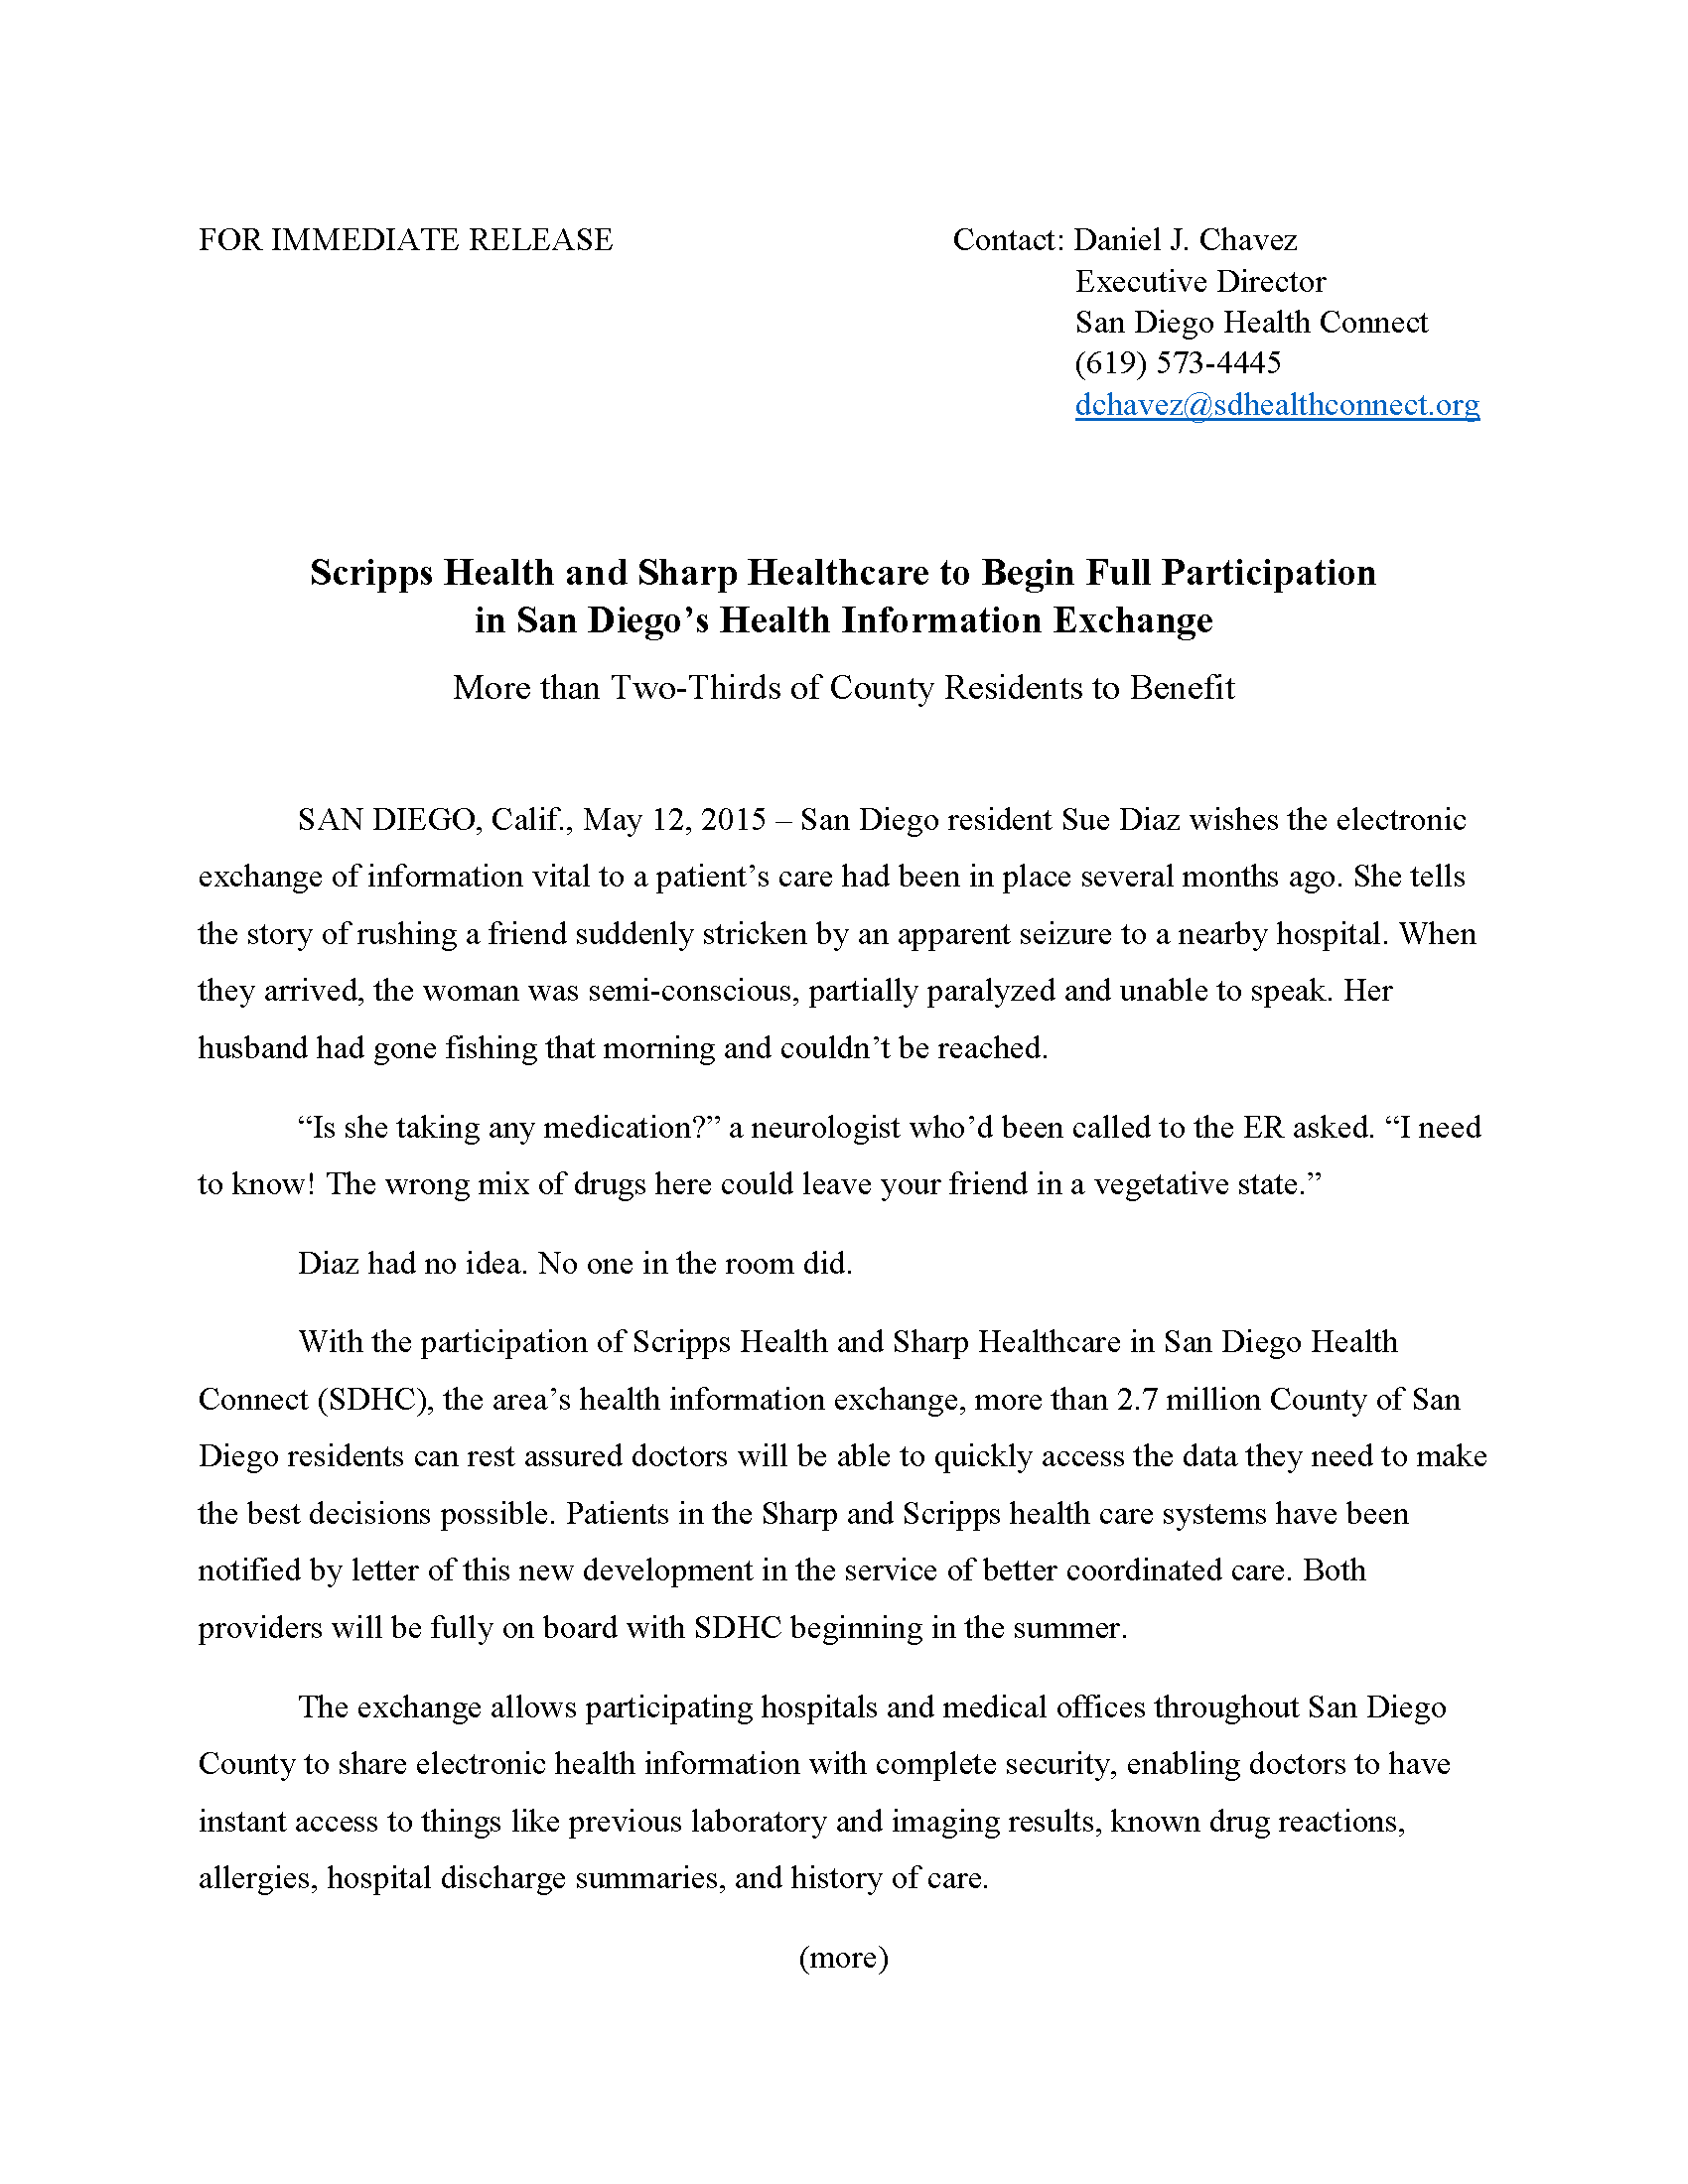 San Diego Health Connect PRESS RELEASE FINAL 51215 Page 1